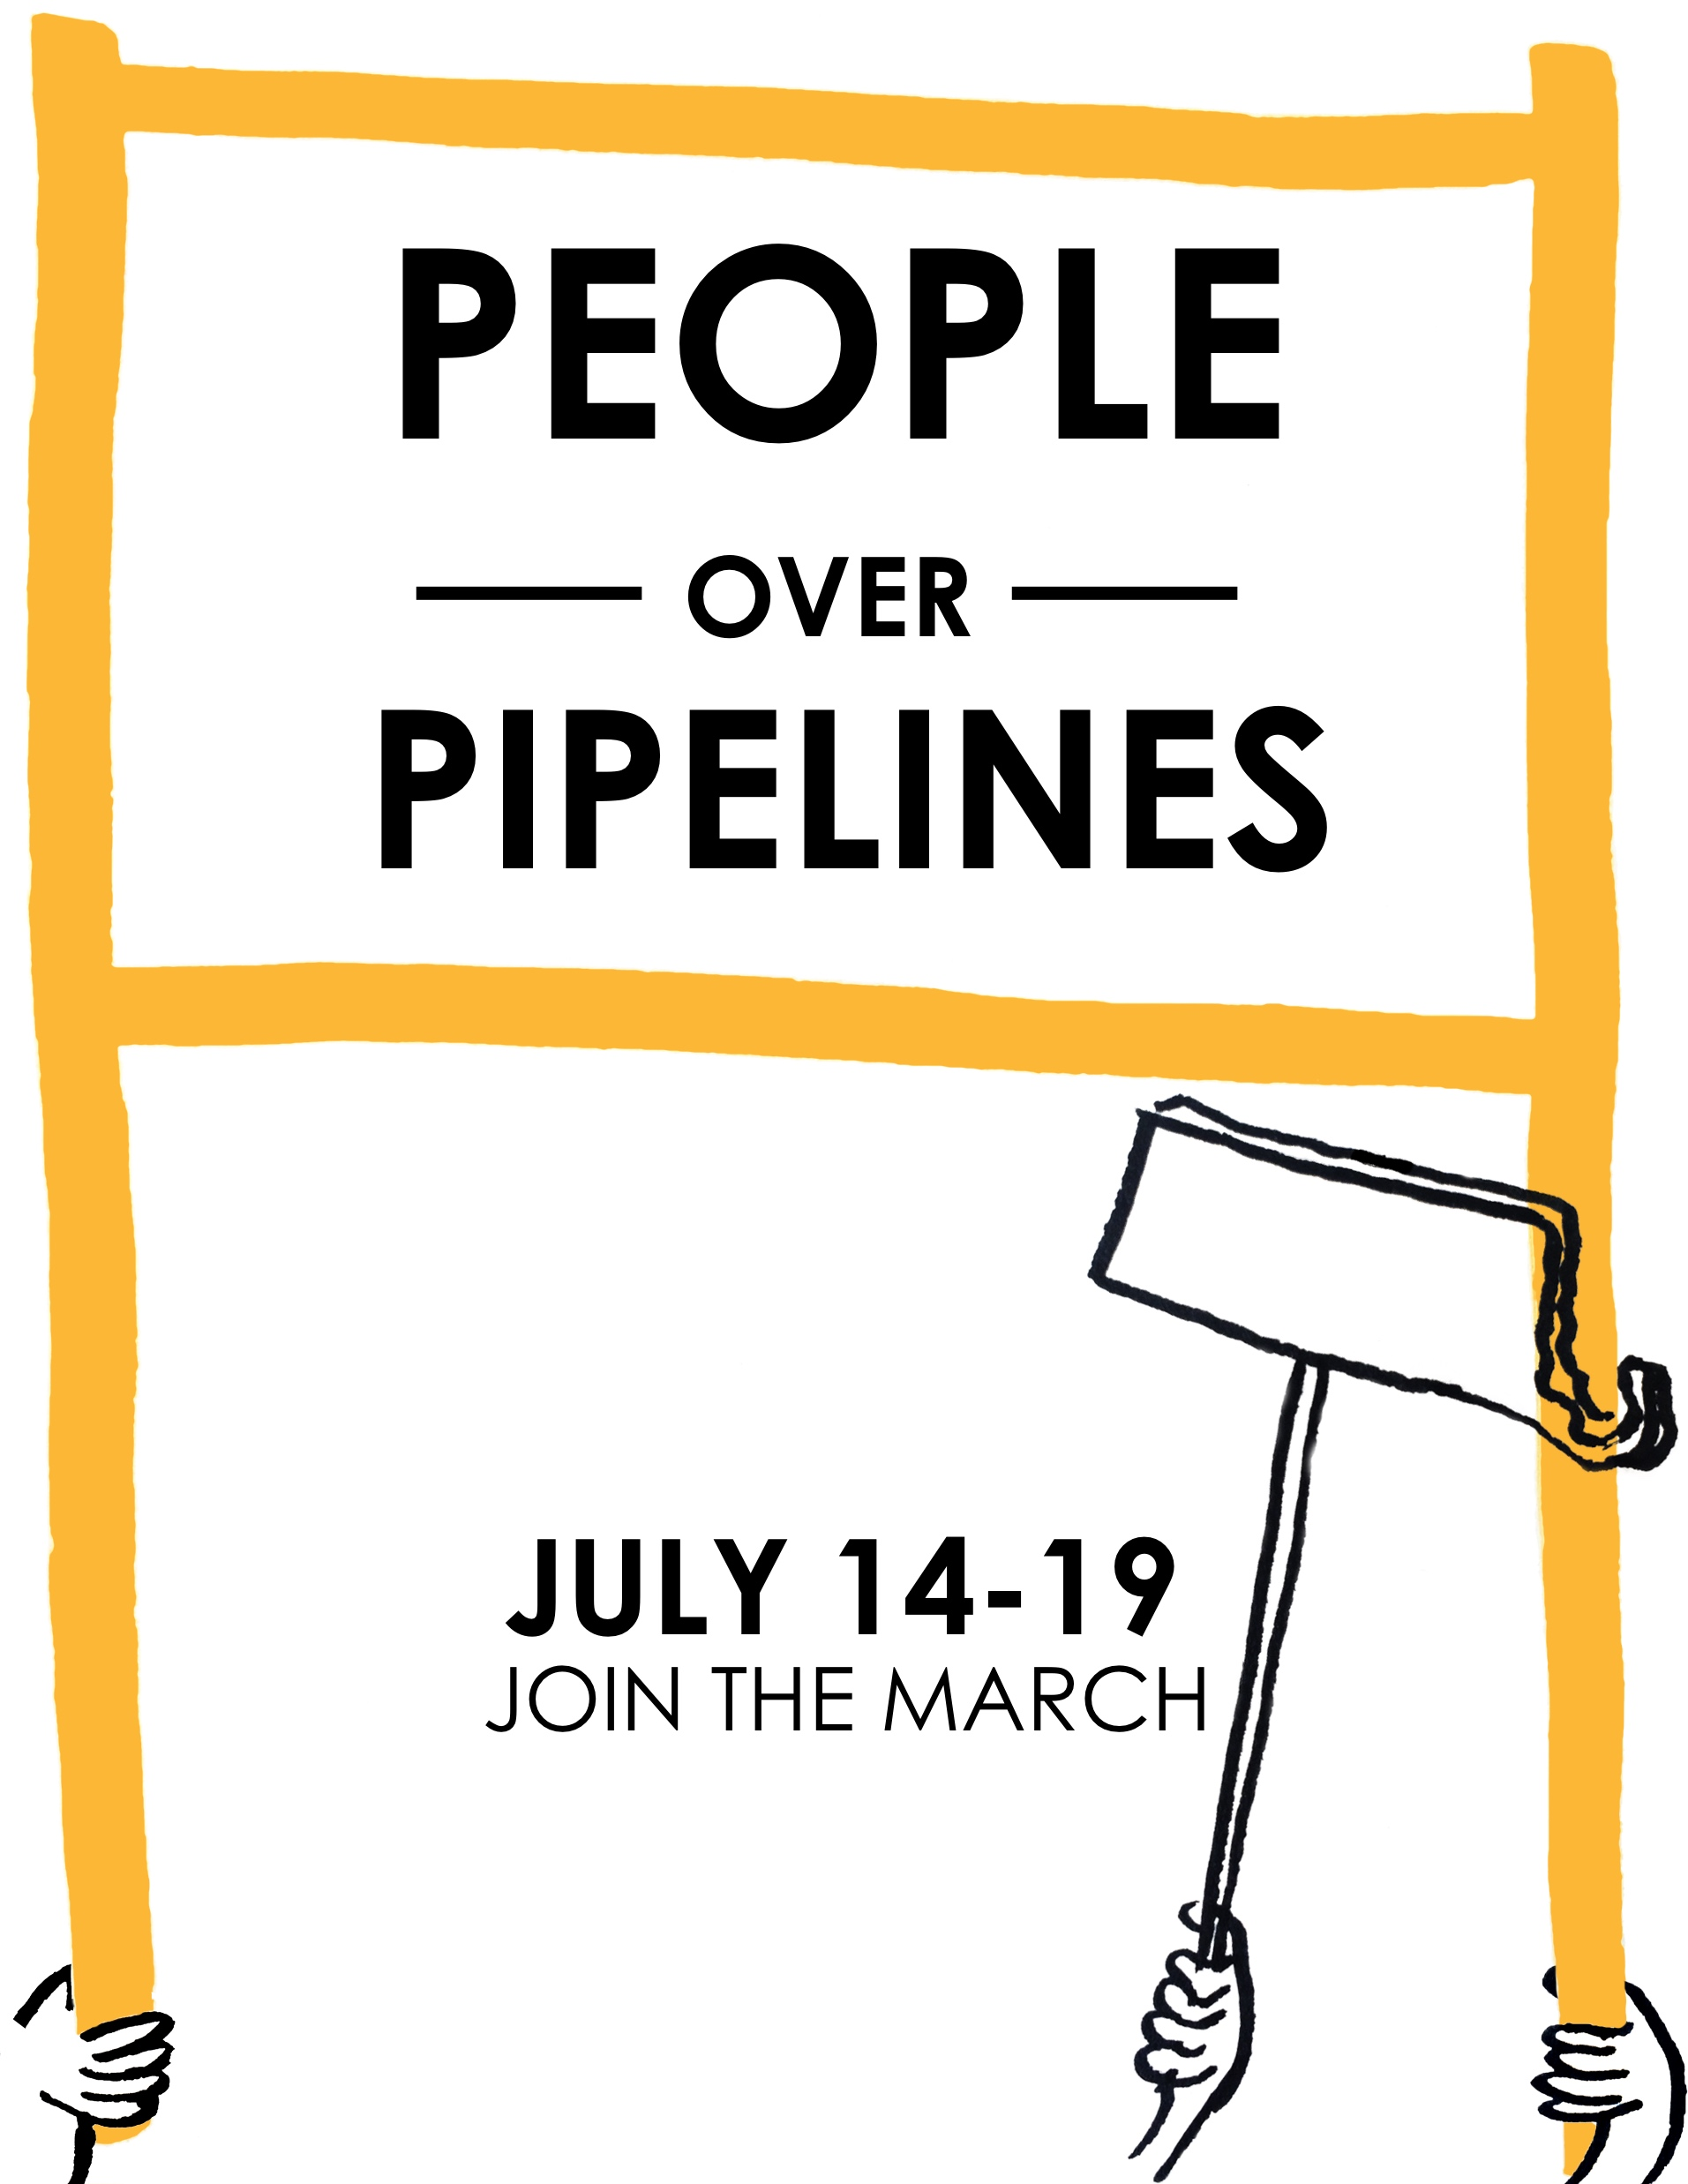 People_Over_Pipelines_front_orange.jpg